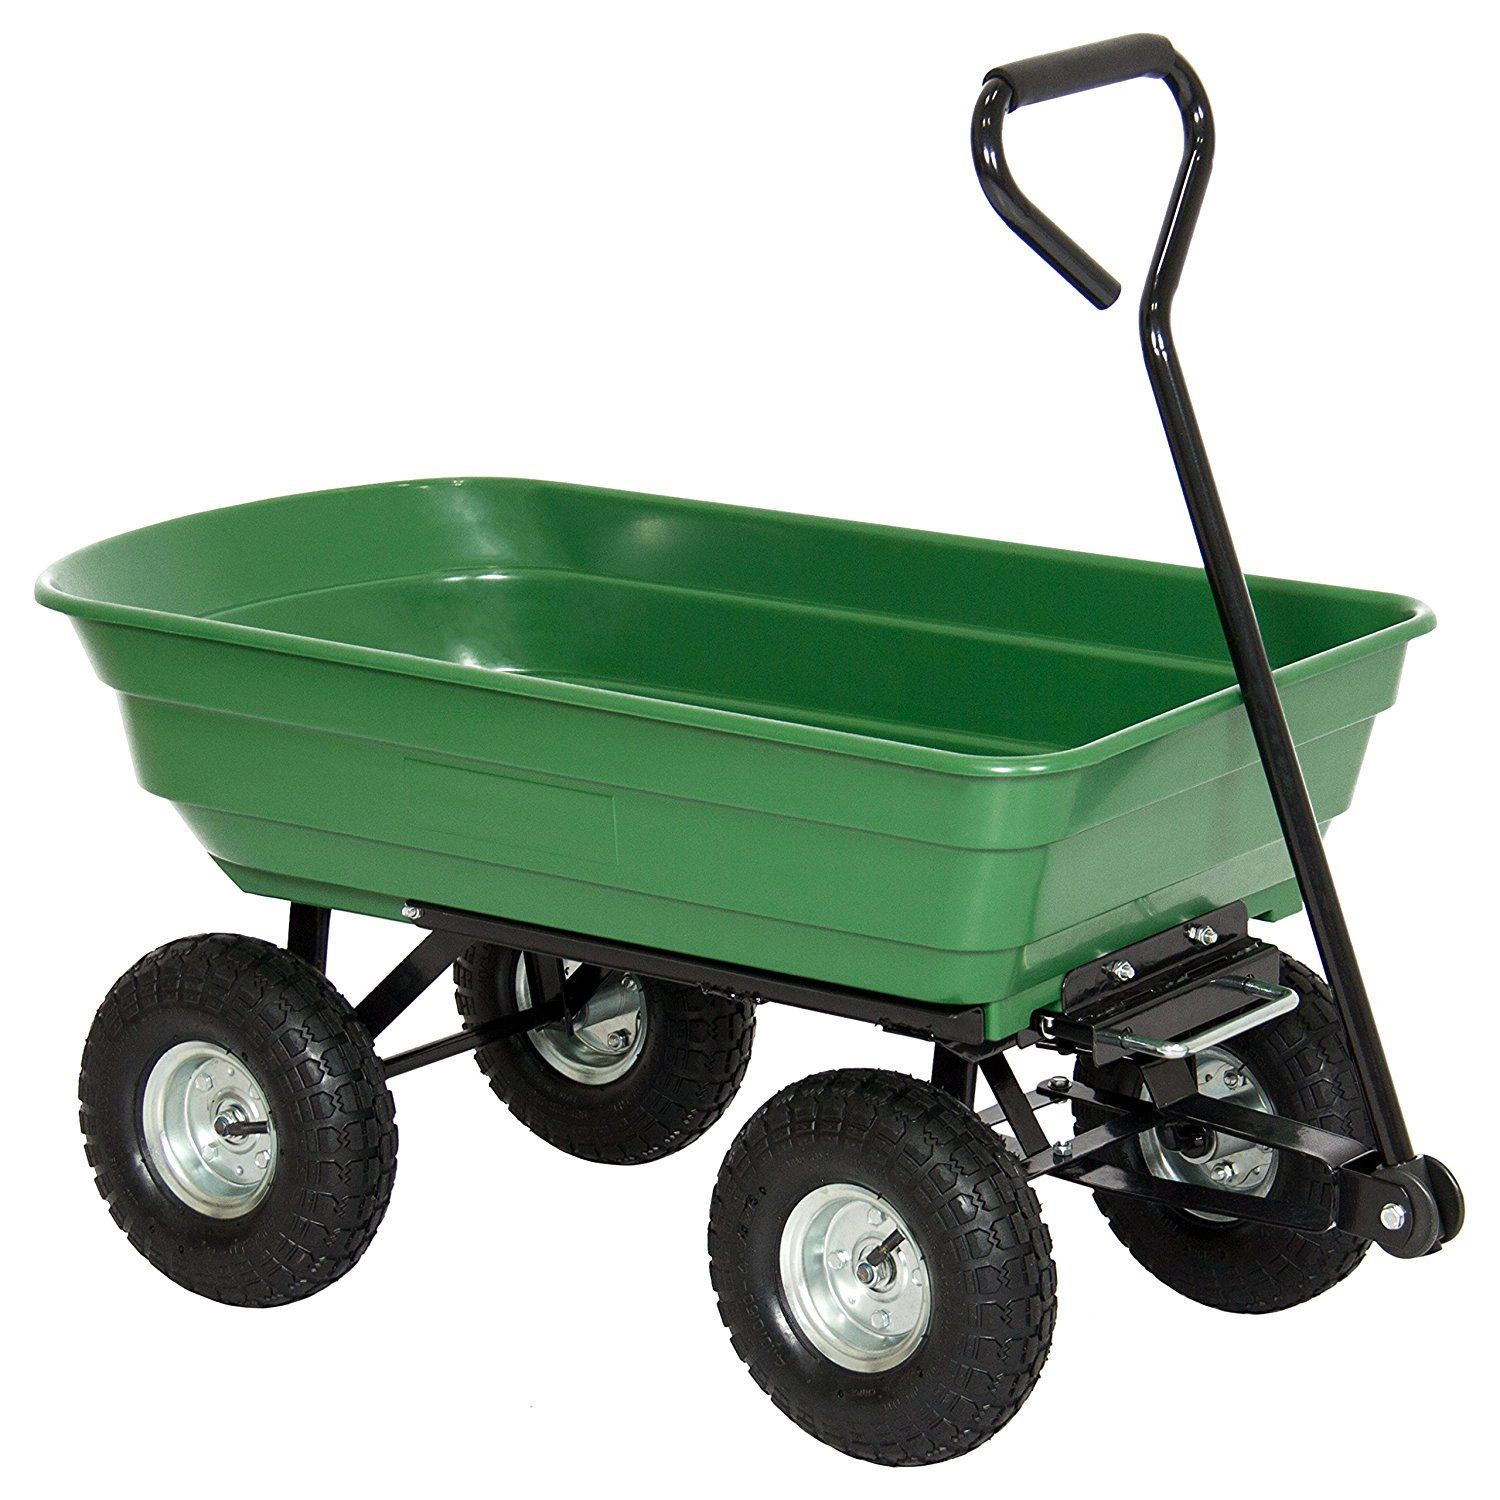 moving cart garden easy manufacturers alibaba com wheels showroom plastic suppliers at portable and tool